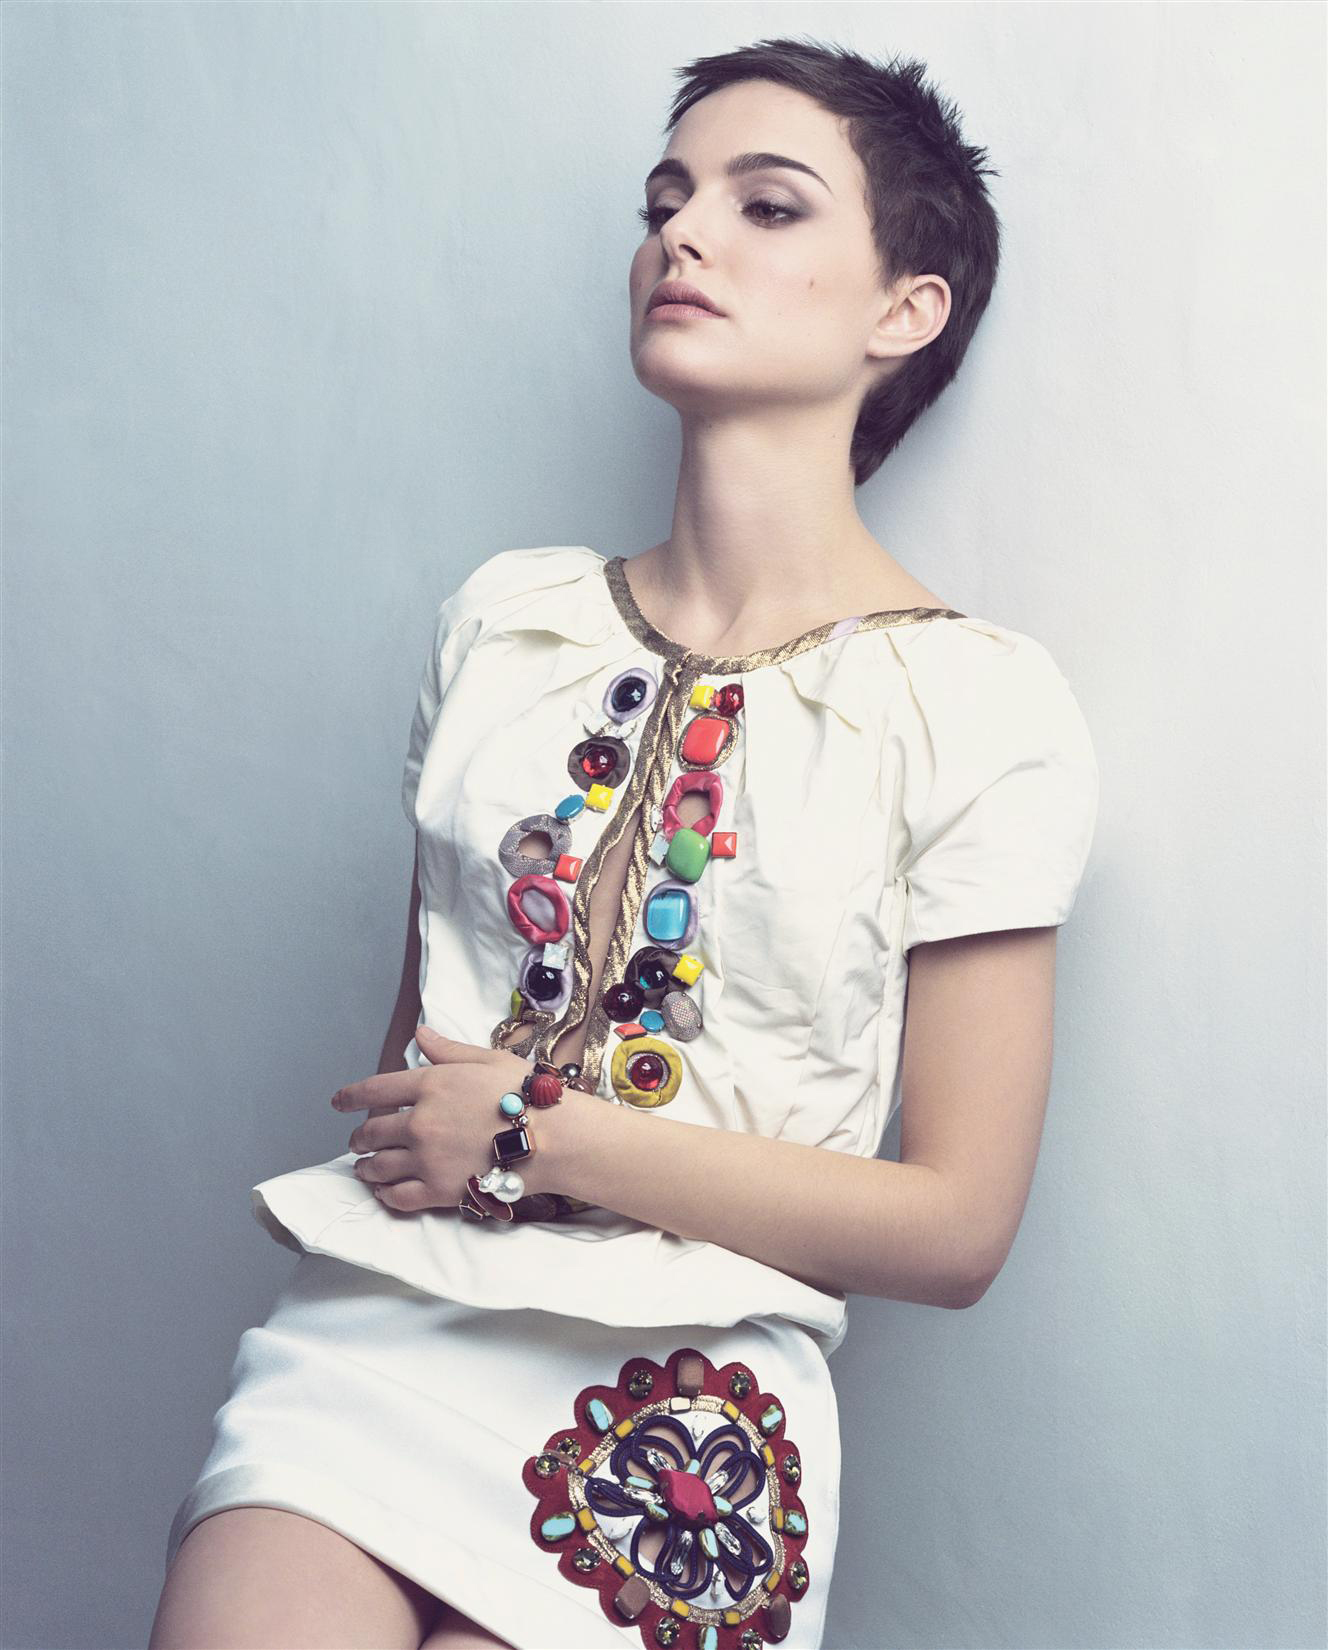 Displaying 16 gt images for audrey tautou haircut pixie